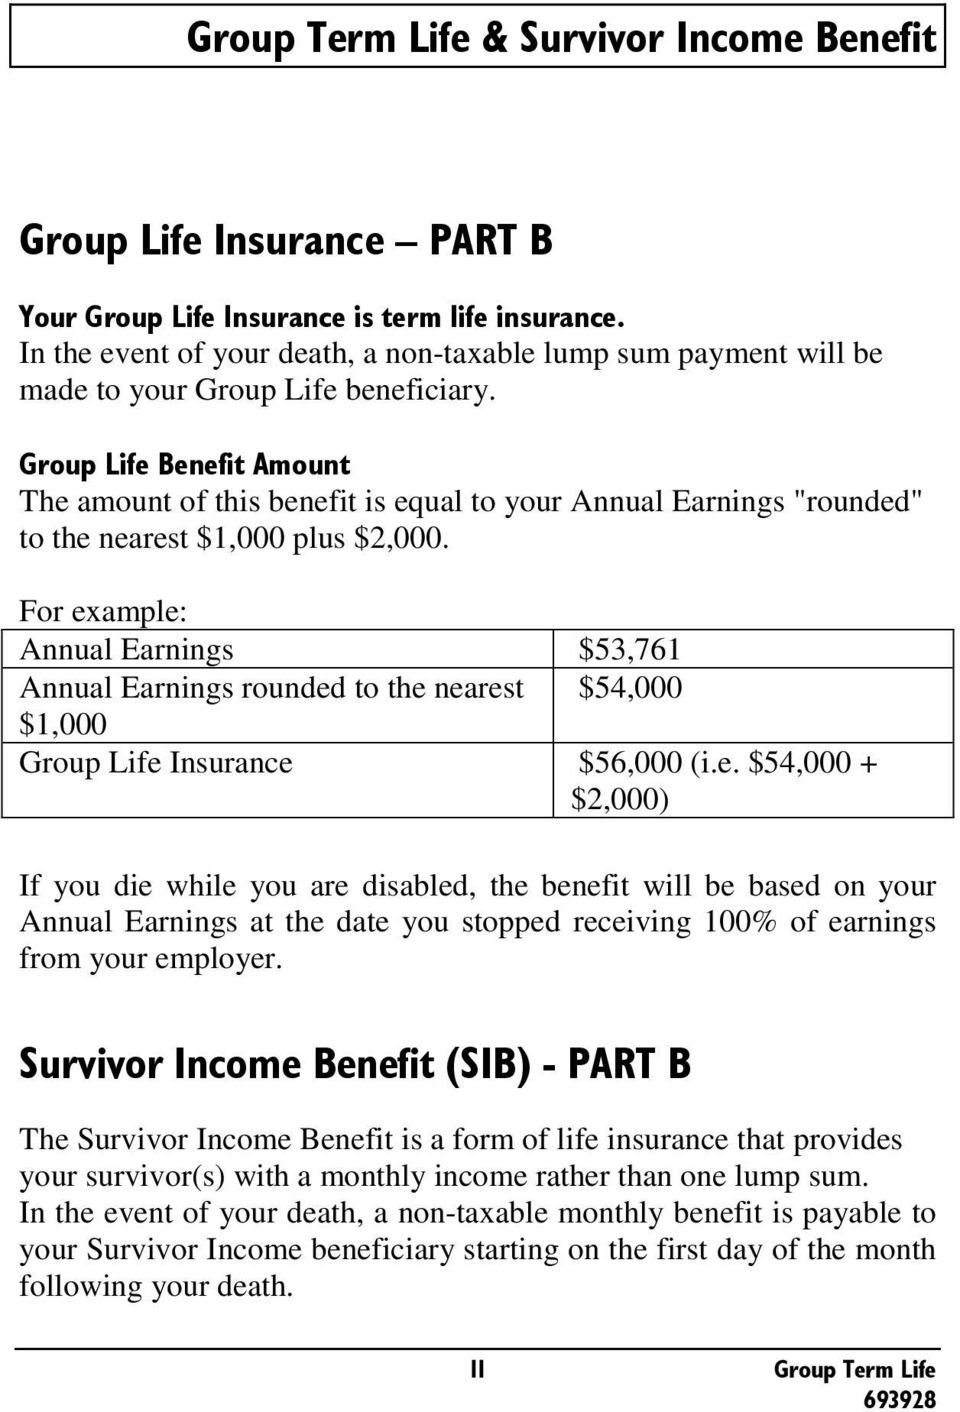 For example: Annual Earnings $53,761 Annual Earnings rounded to the nearest $54,000 $1,000 Group Life Insurance $56,000 (i.e. $54,000 + $2,000) If you die while you are disabled, the benefit will be based on your Annual Earnings at the date you stopped receiving 100% of earnings from your employer.